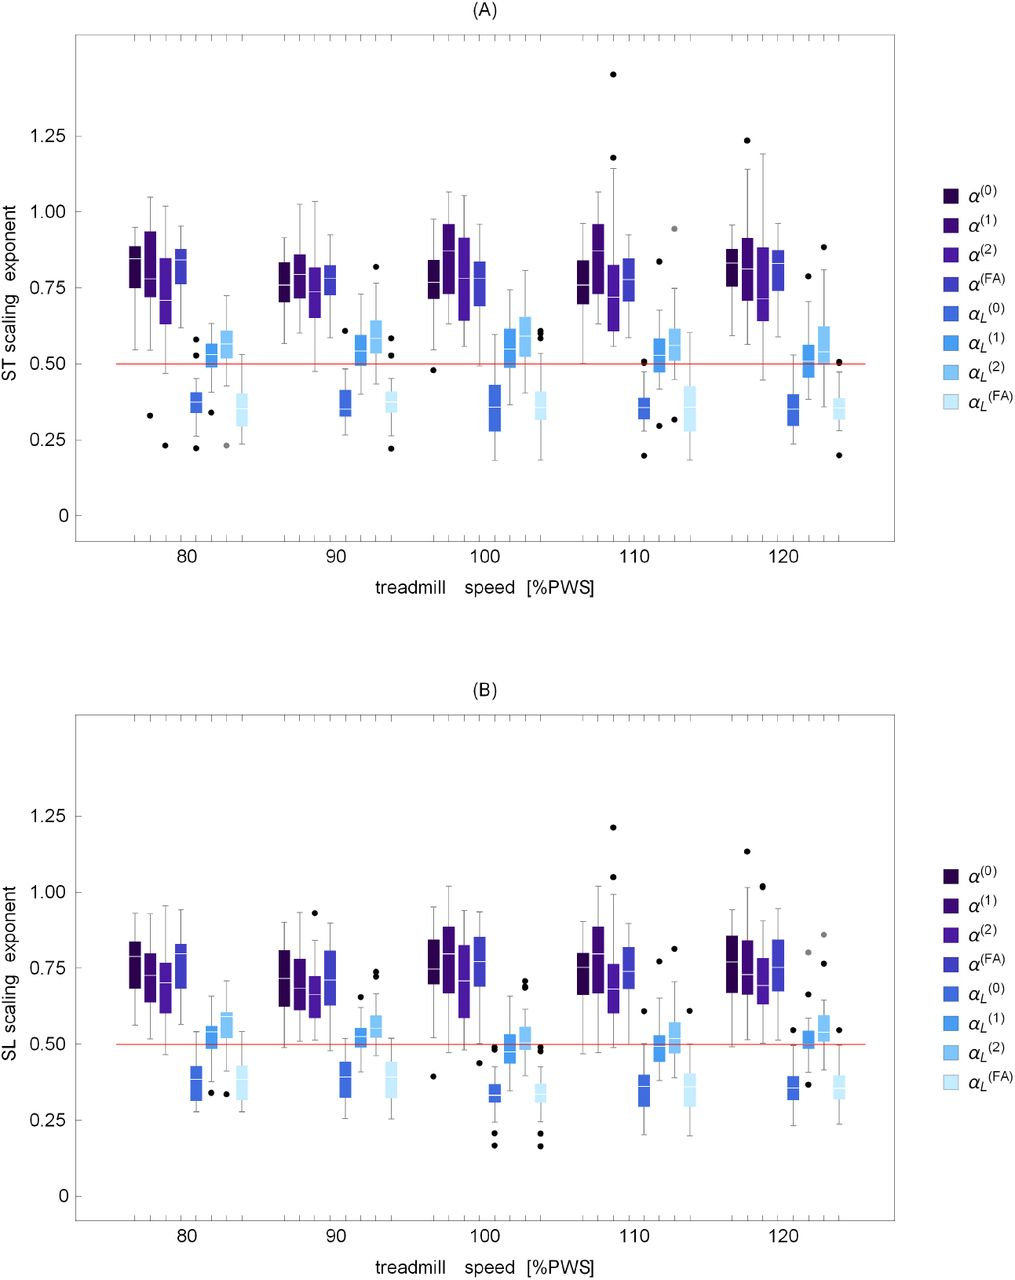 Significance of trends in gait dynamics | bioRxiv